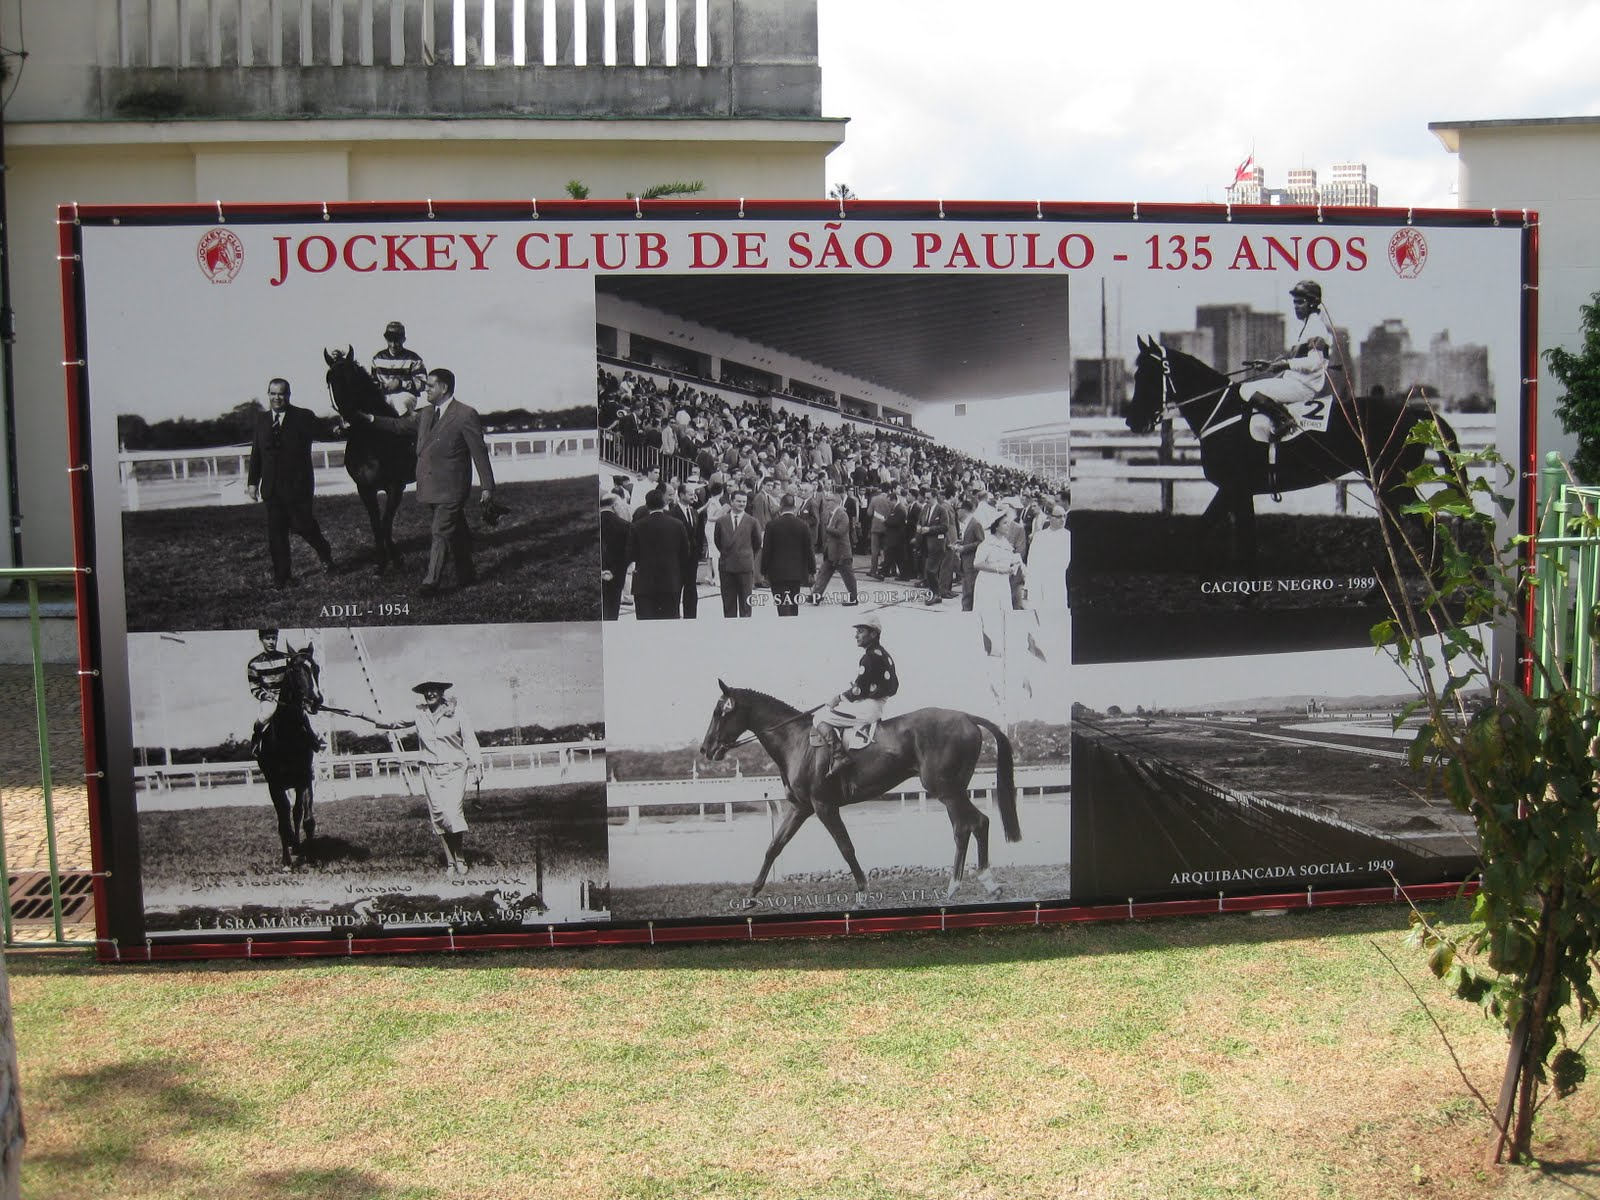 Descopera brazilia jockey club s o paulo for Puerta 4 jockey club